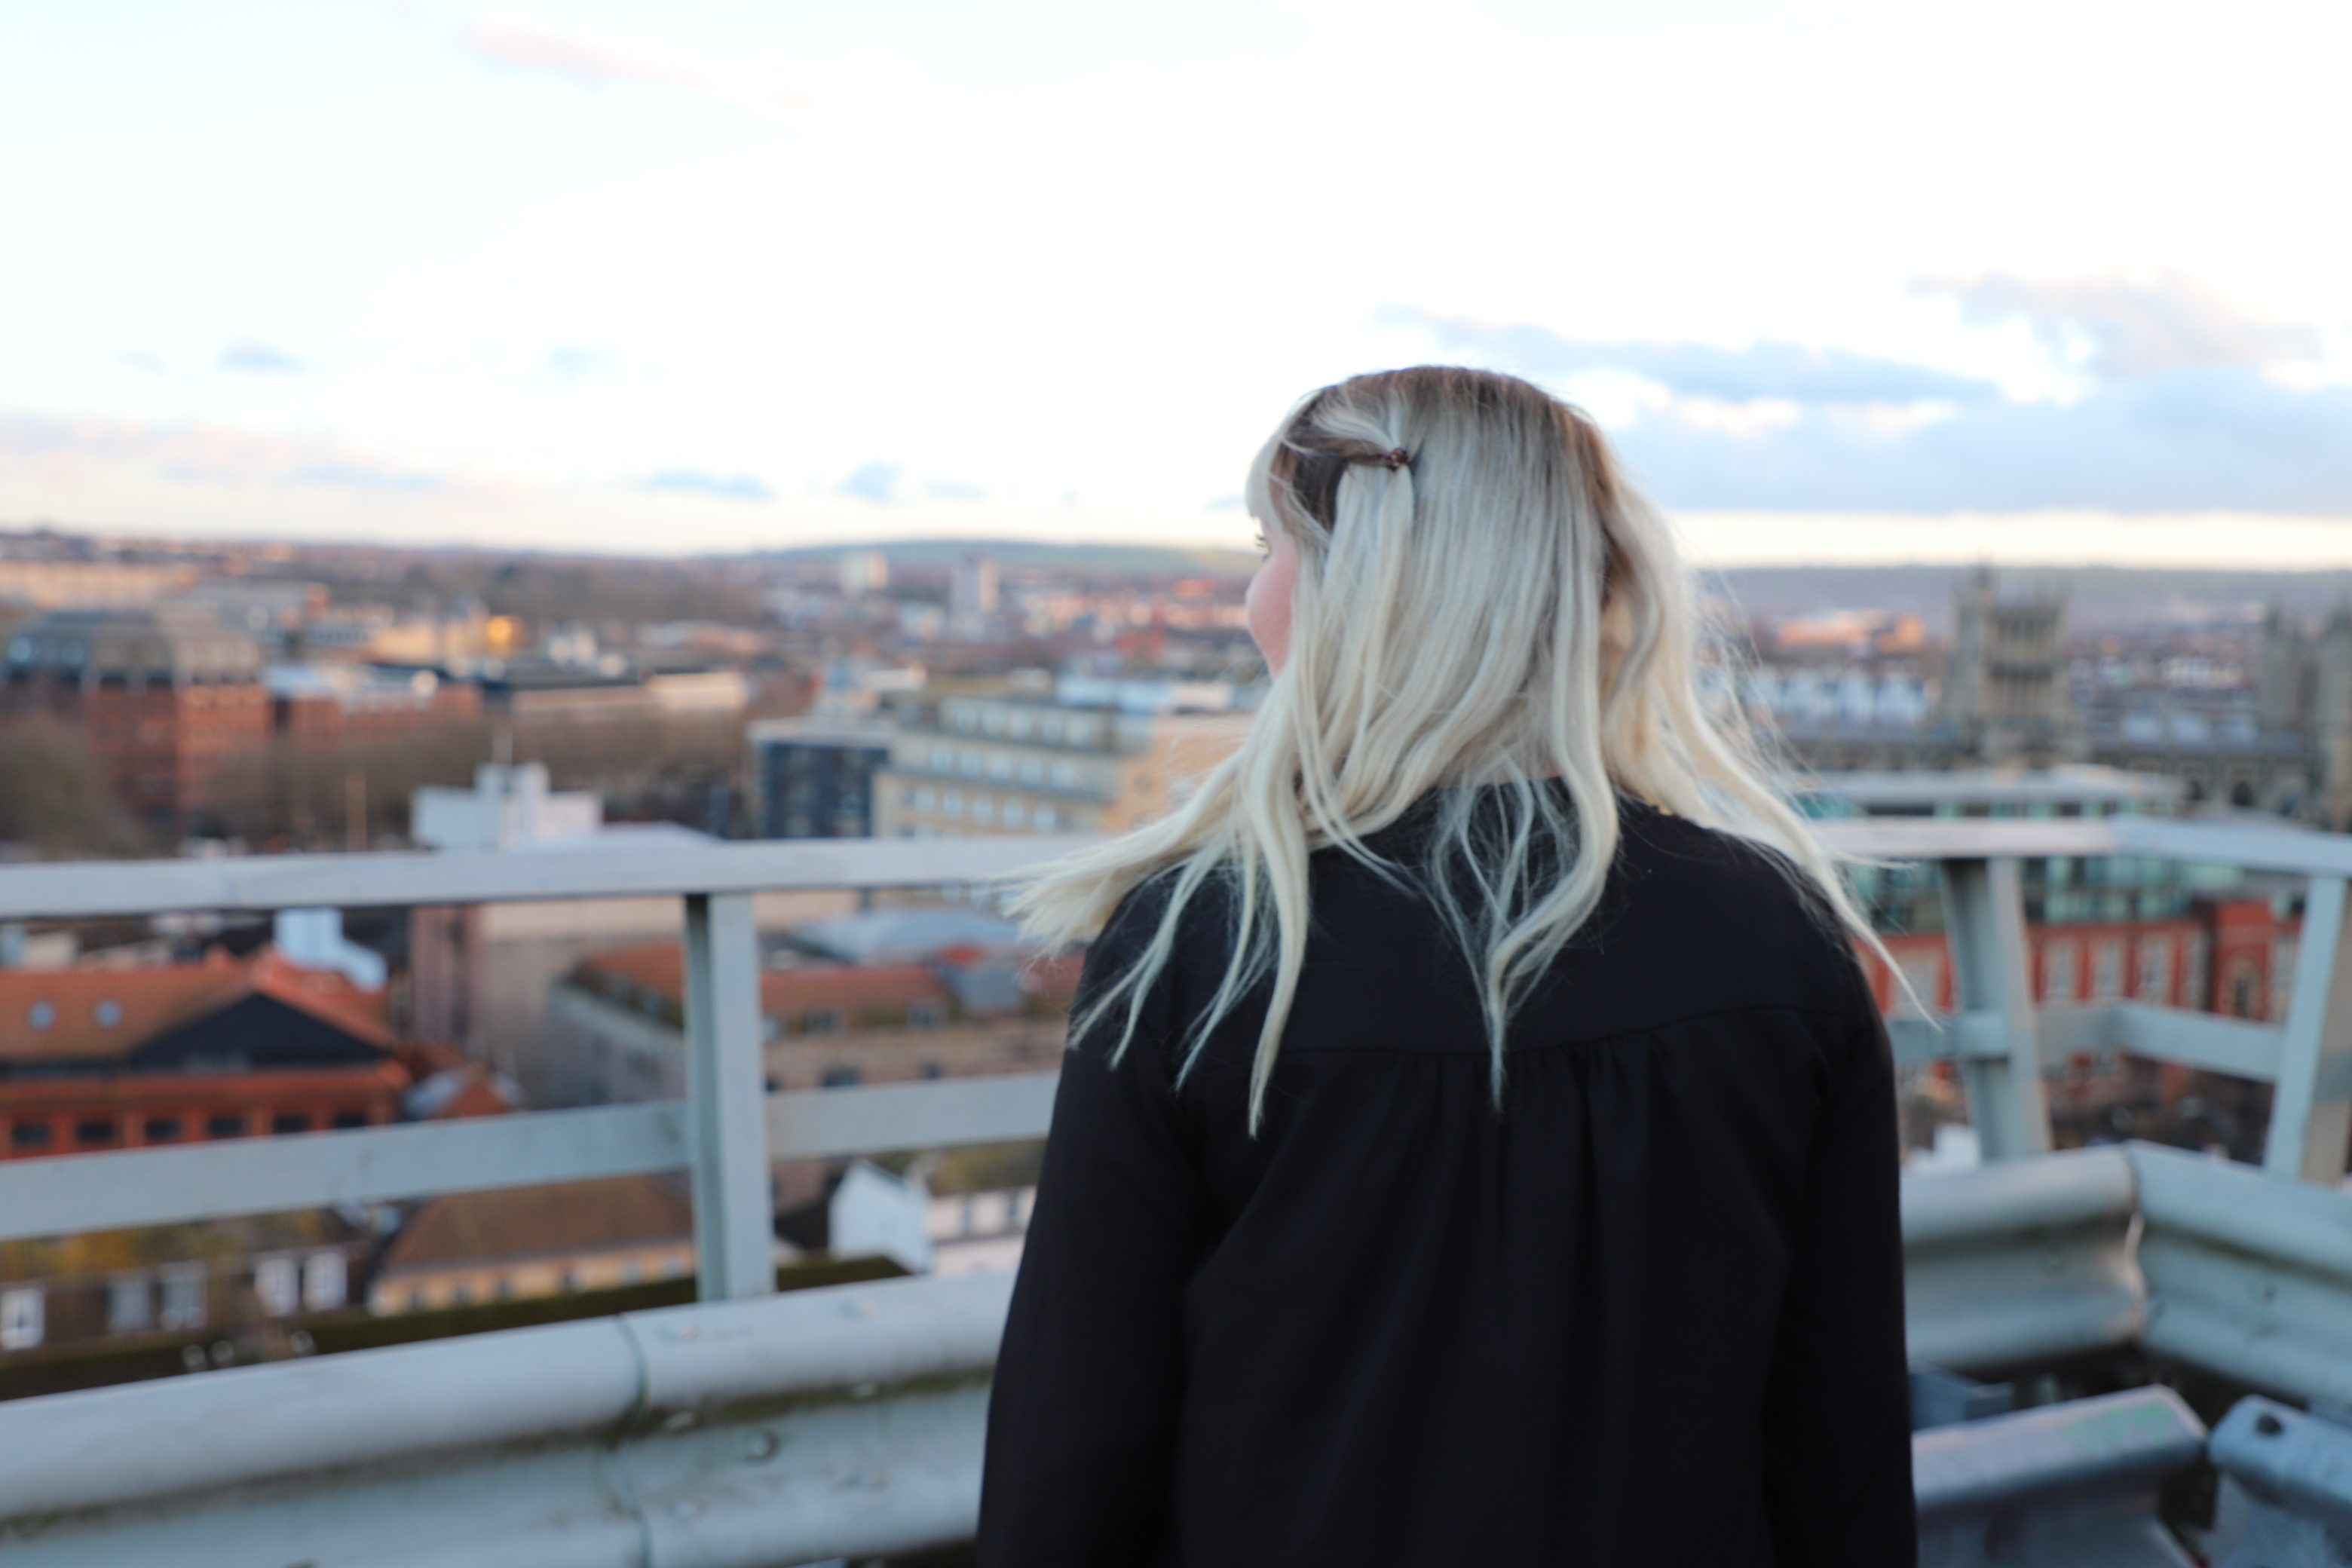 Me on top of carpark looking out over Bristol